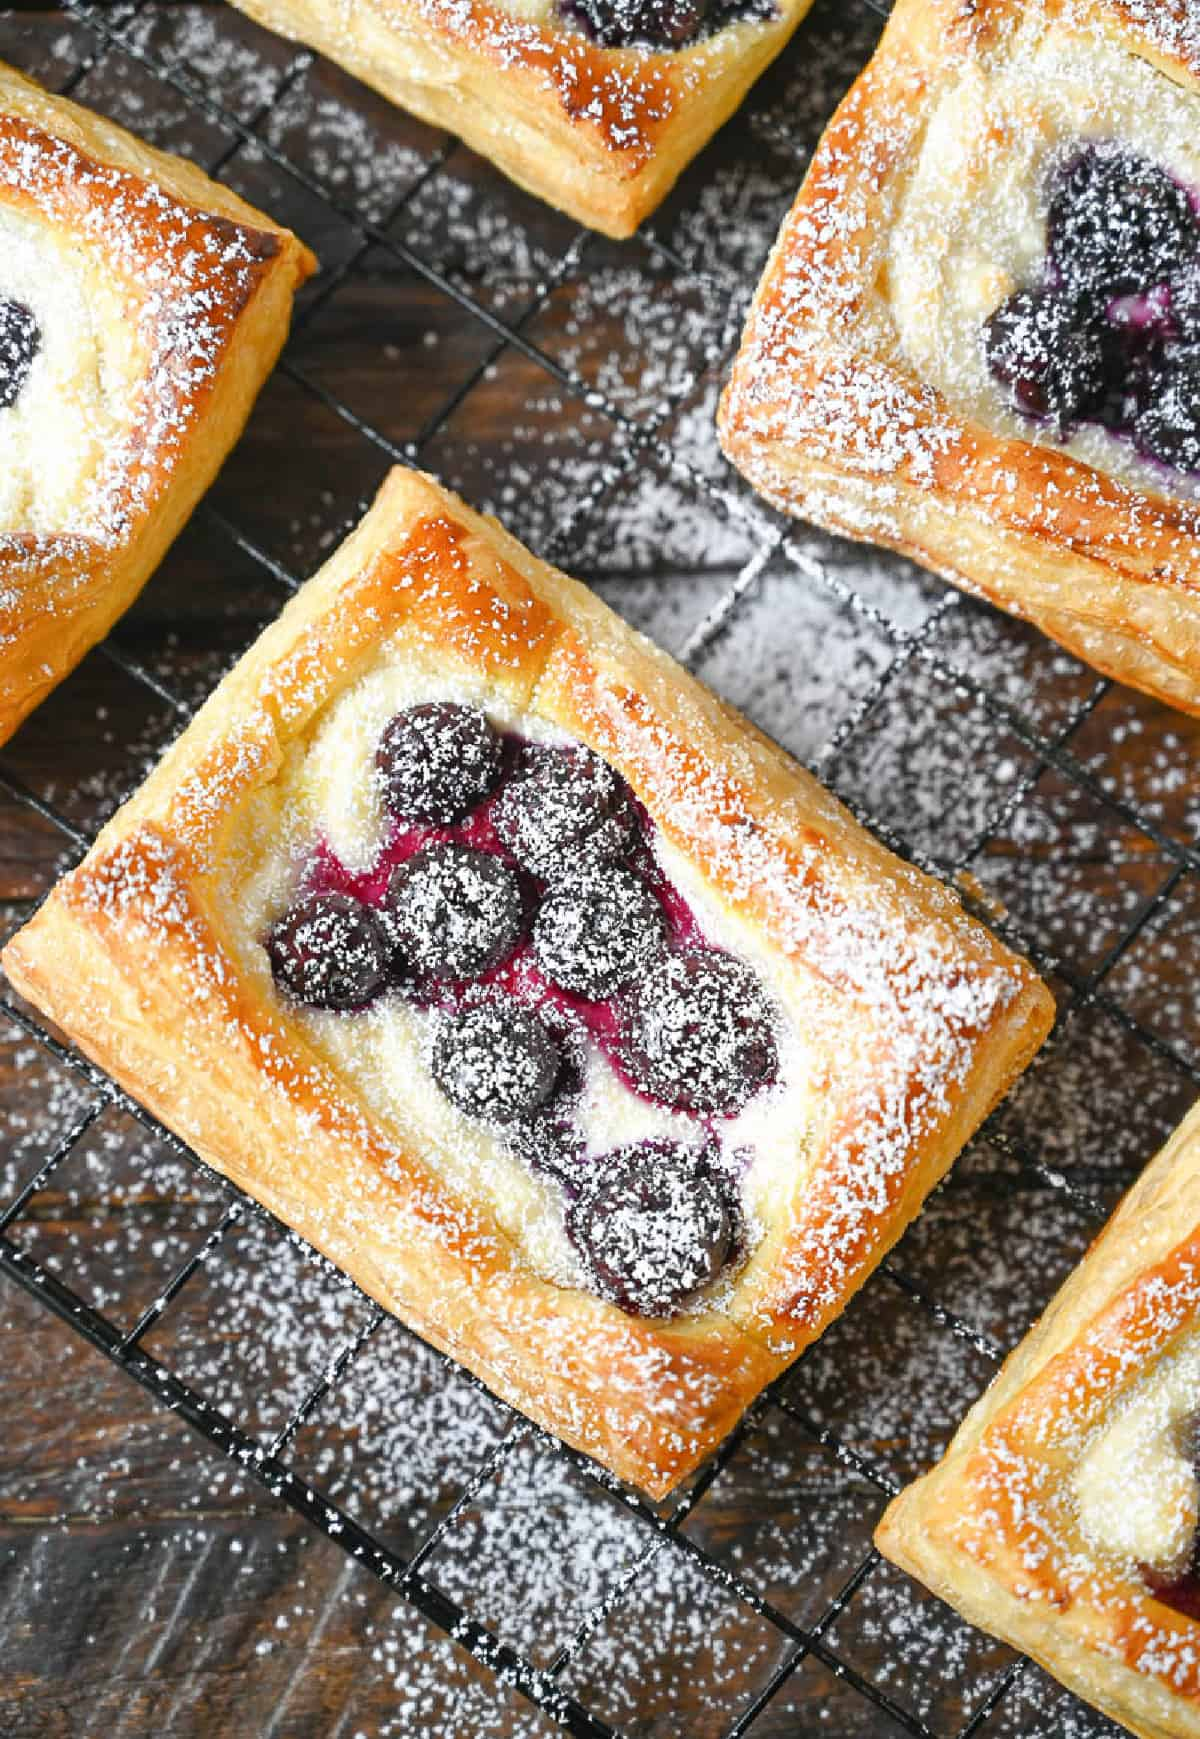 A blueberry cream cheese danish on a wire cooling rack.